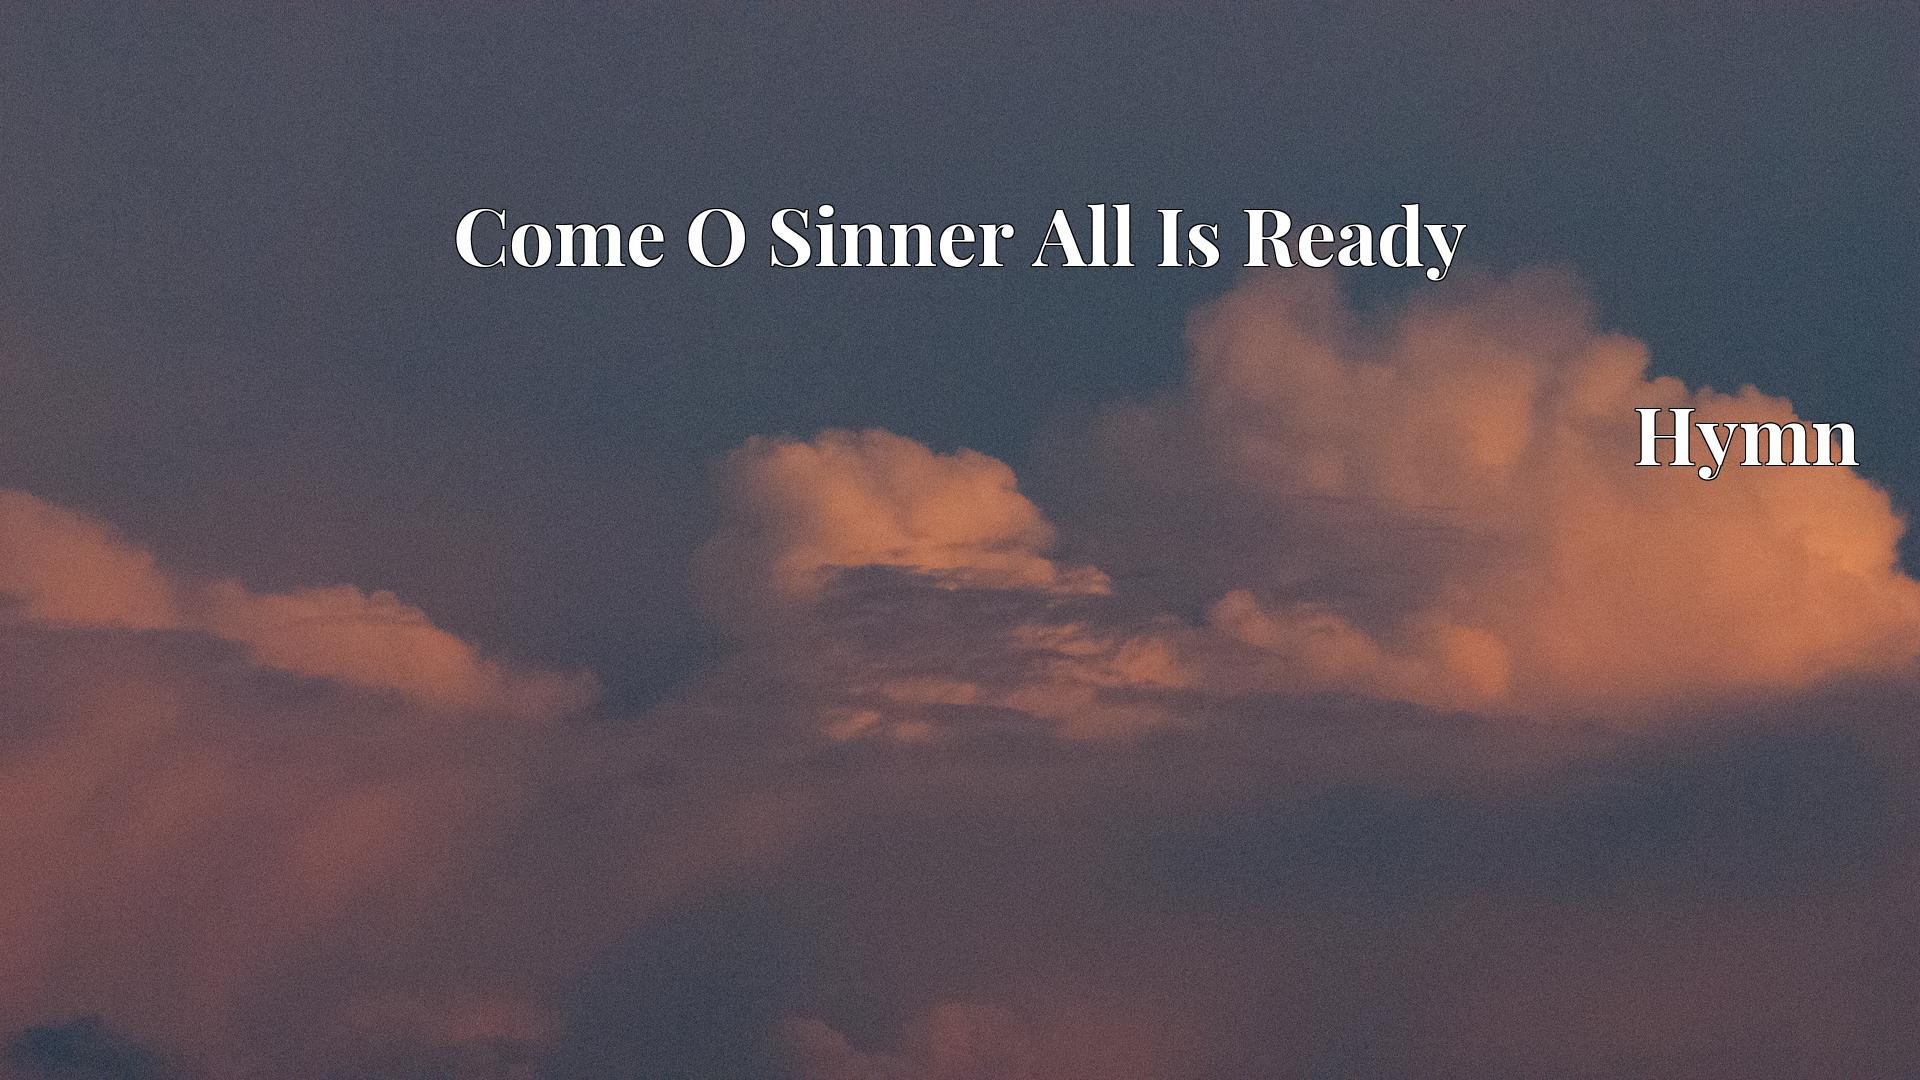 Come O Sinner All Is Ready - Hymn